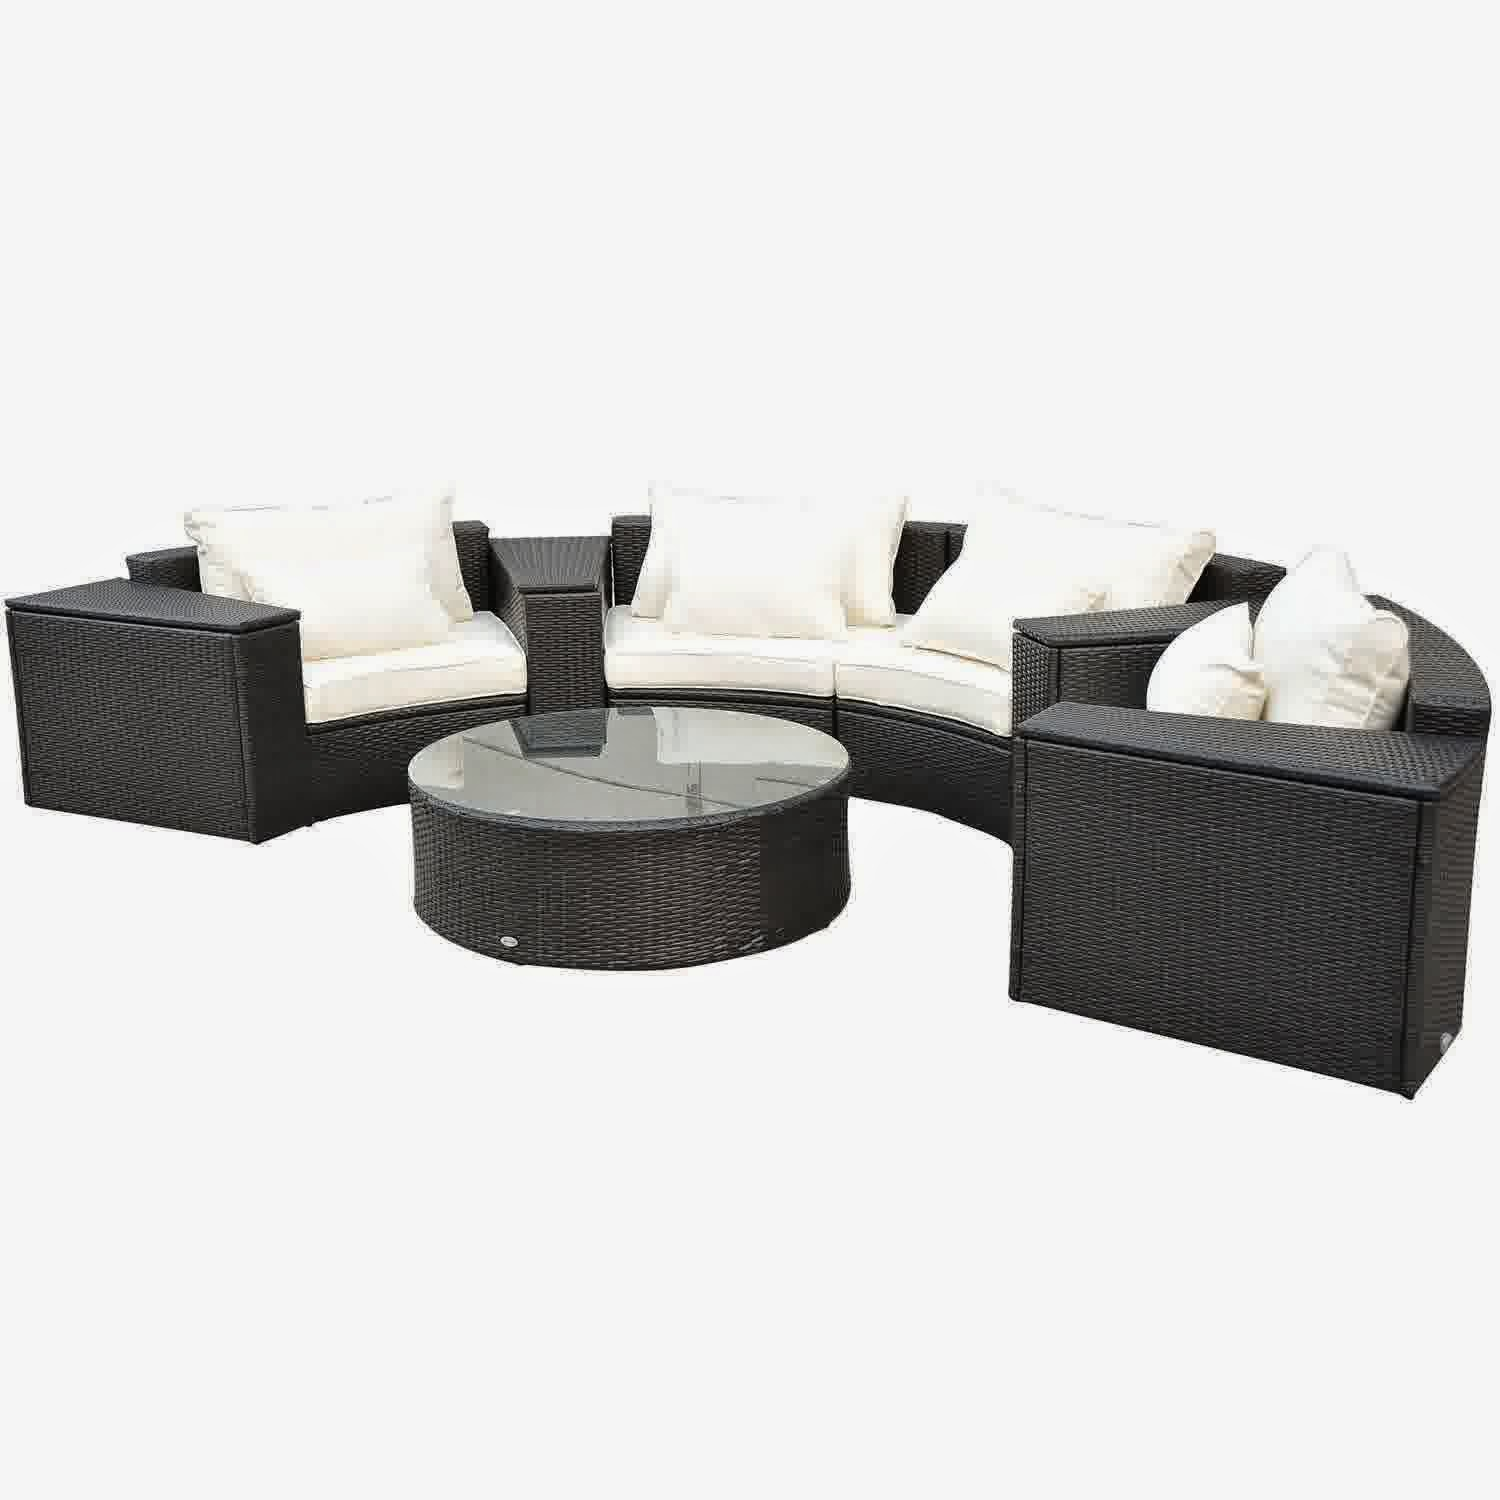 discount outdoor sofa set leather sleeper full 57 outsunny 9pc patio rattan wicker